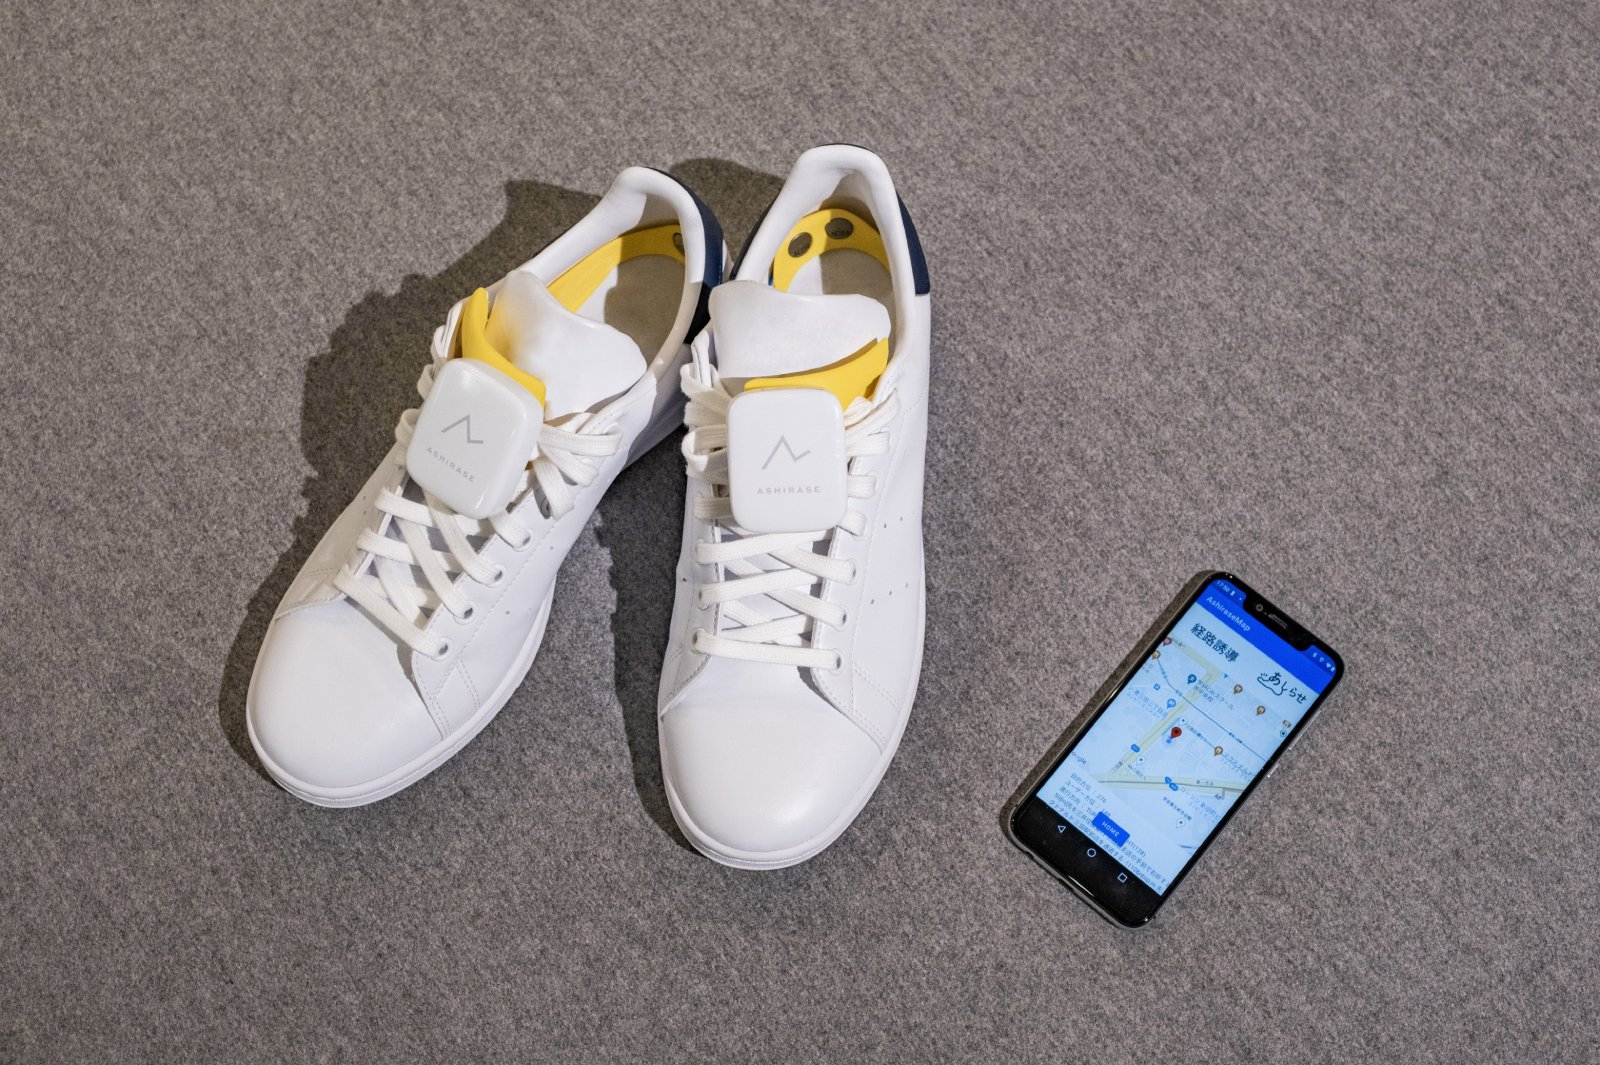 This toe tickling navigation system will help the visually impaired walk tall